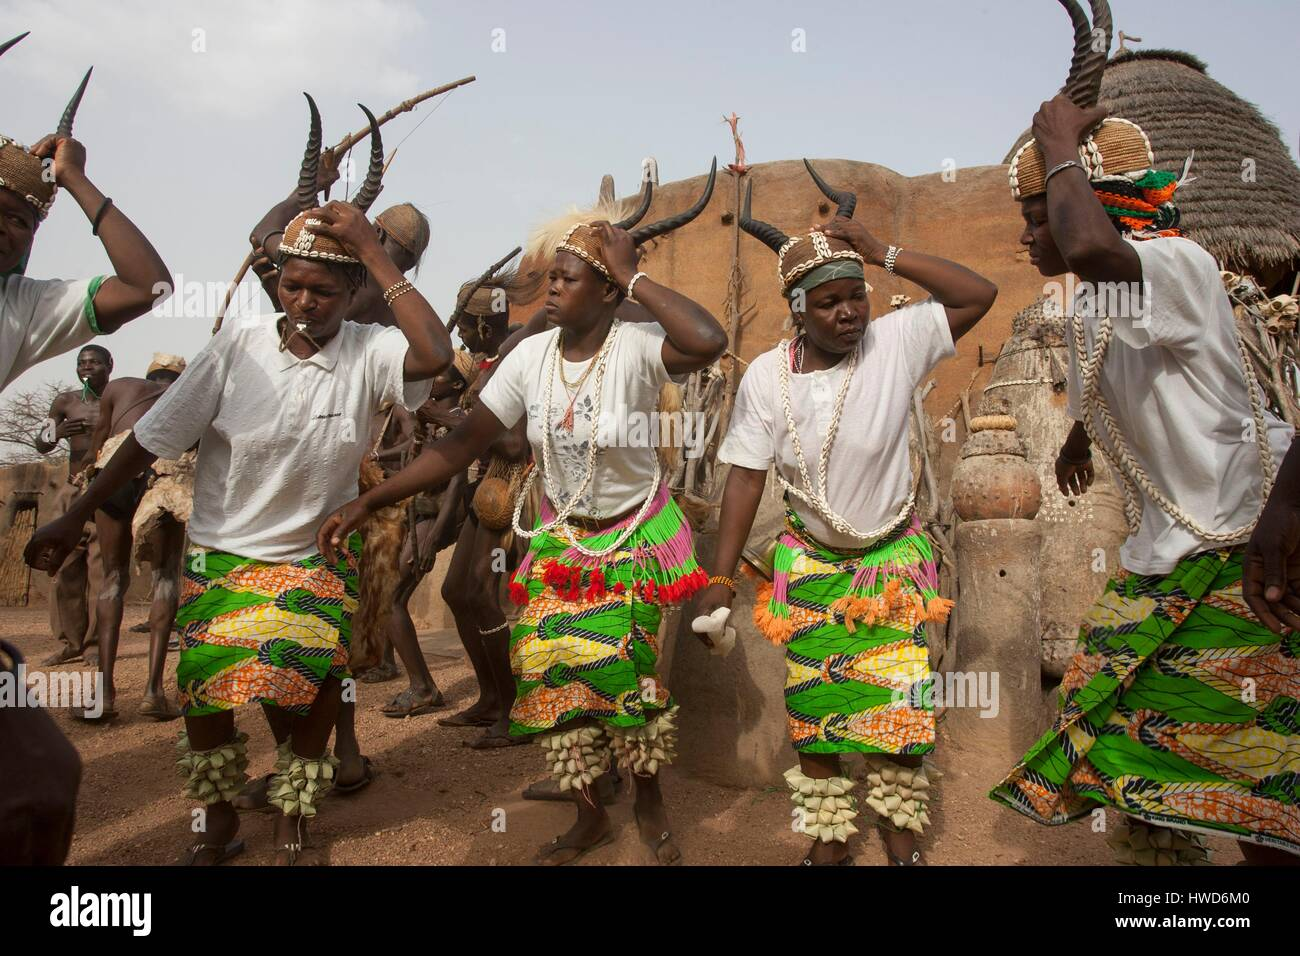 Togo, northern region, the Tamberma dance to conciliate the fetishes of the ancestors placed in front of the entrance - Stock Image